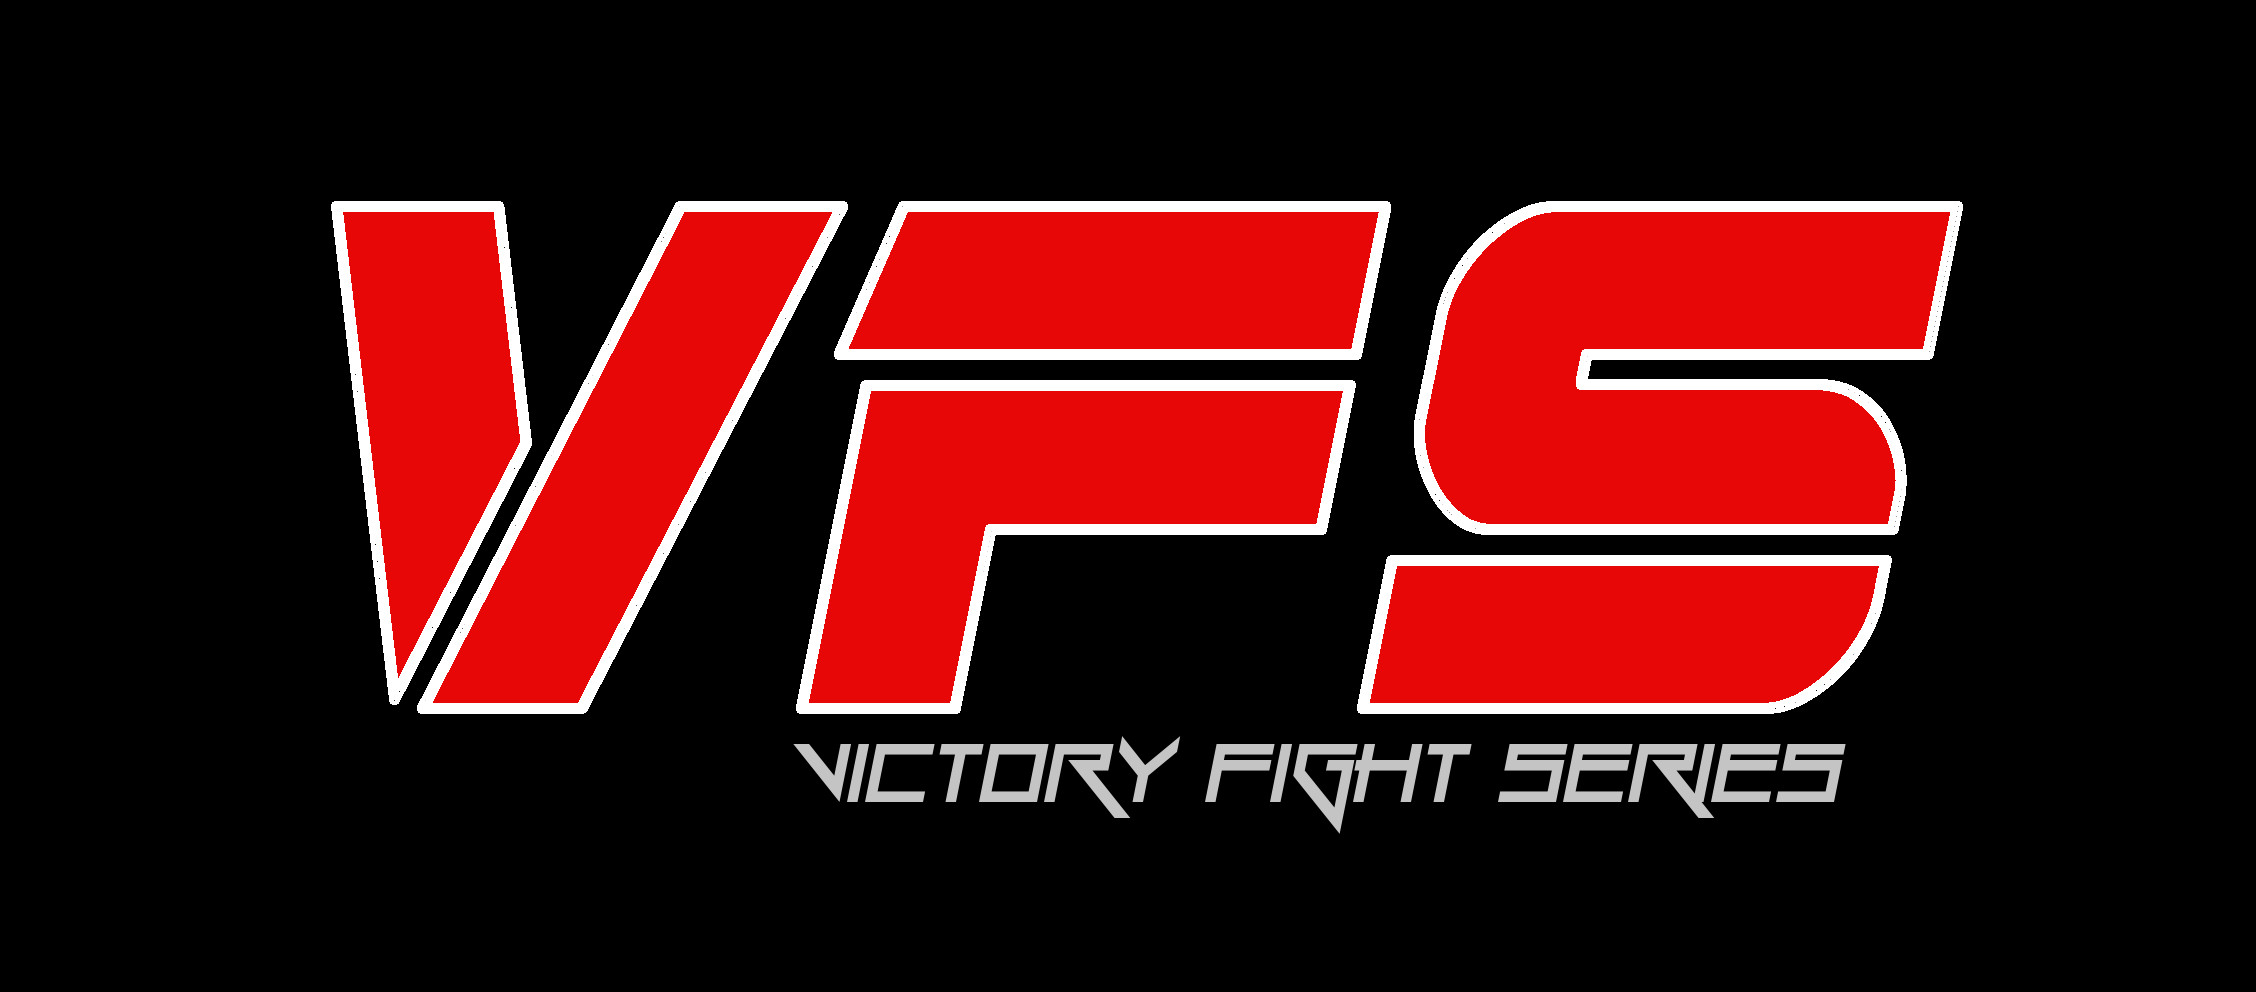 Victory Fight Series